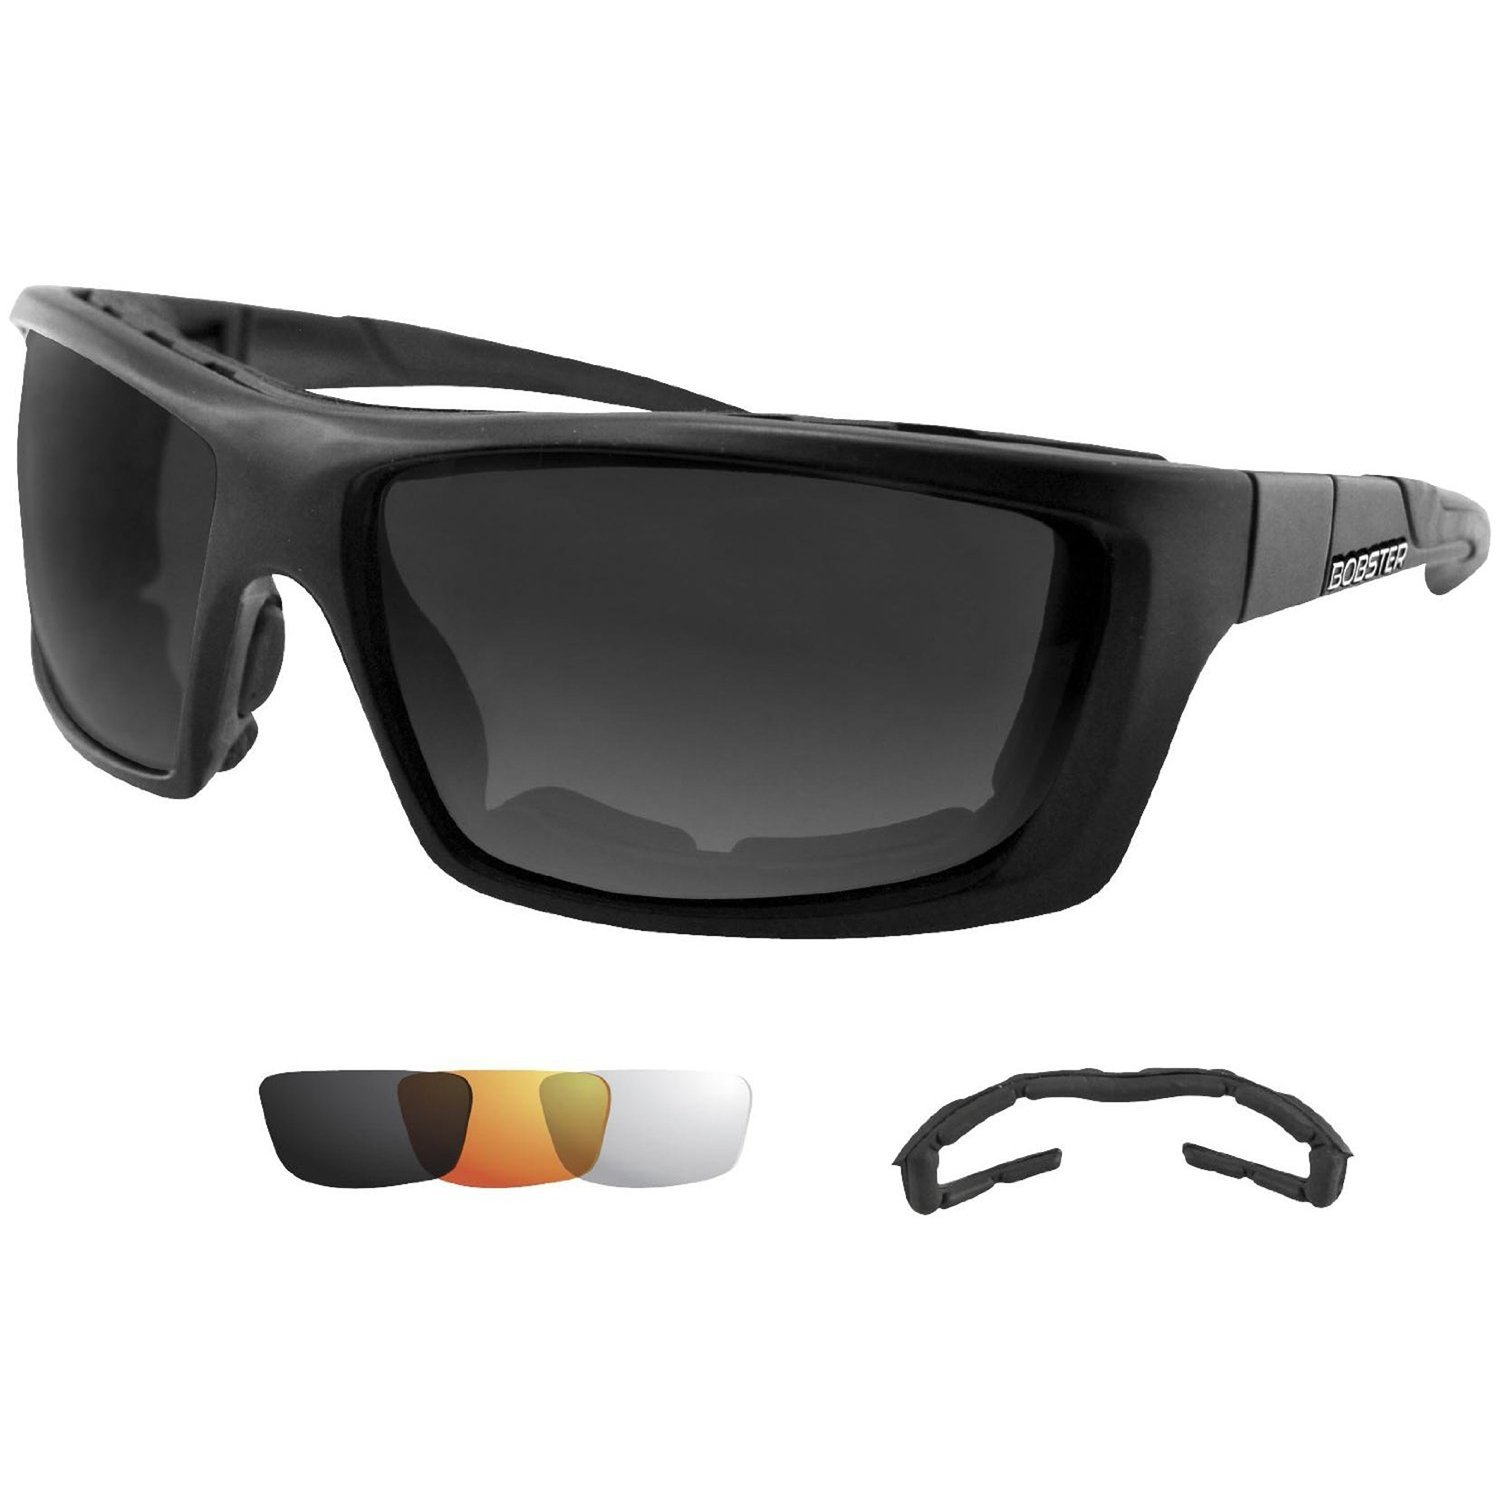 Bobster Trident Convertible Polarized Smked Clr & Amber Lens